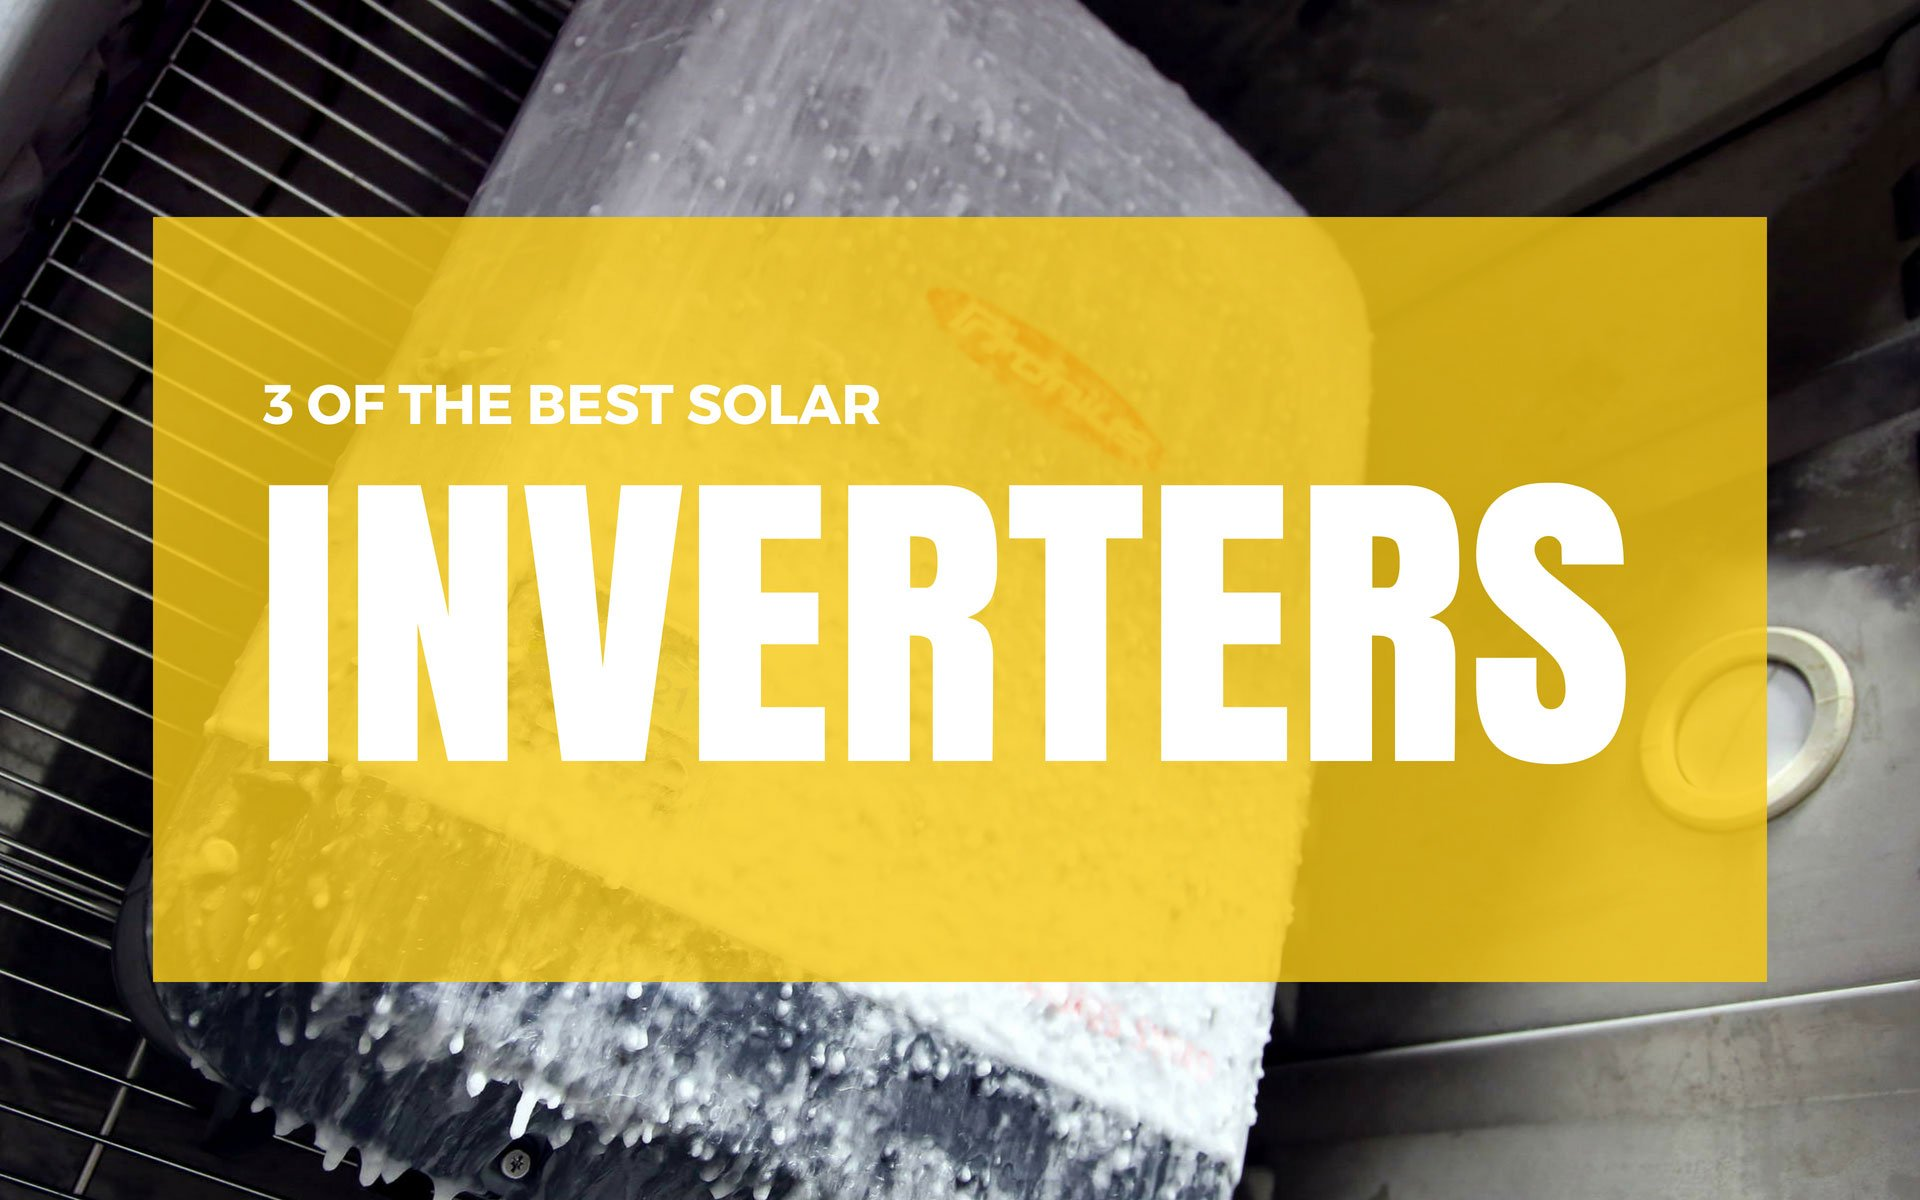 3 OF THE BEST SOLAR INVERTERS BY PERTH SOLAR WAREHOUSE